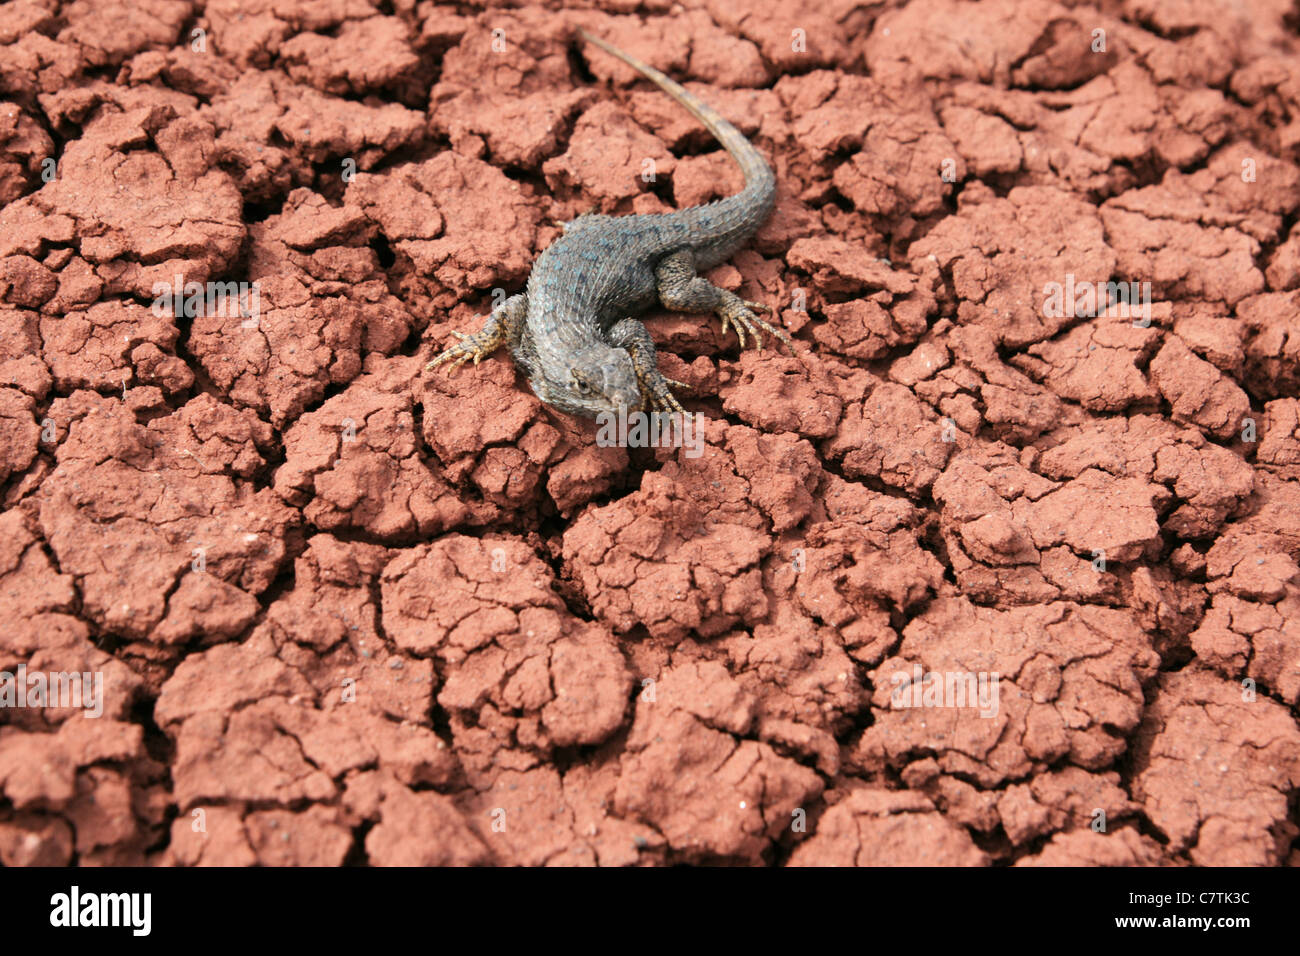 northwestern fence lizard (Sceloporus occidentalis) on cracked red clay ground - Stock Image